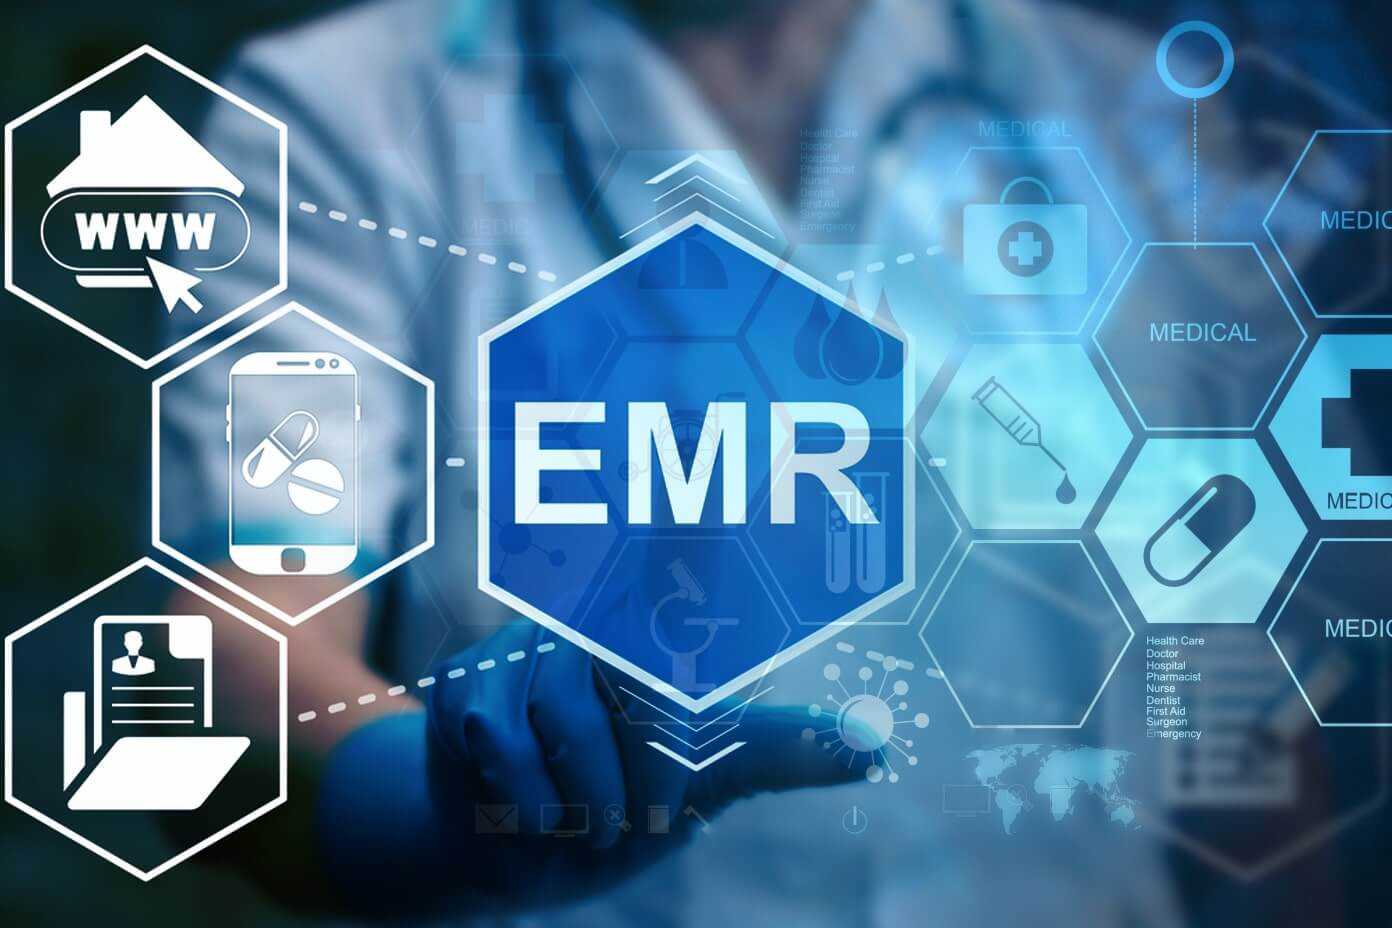 10 Must-Have EMR Features for Healthcare Practice